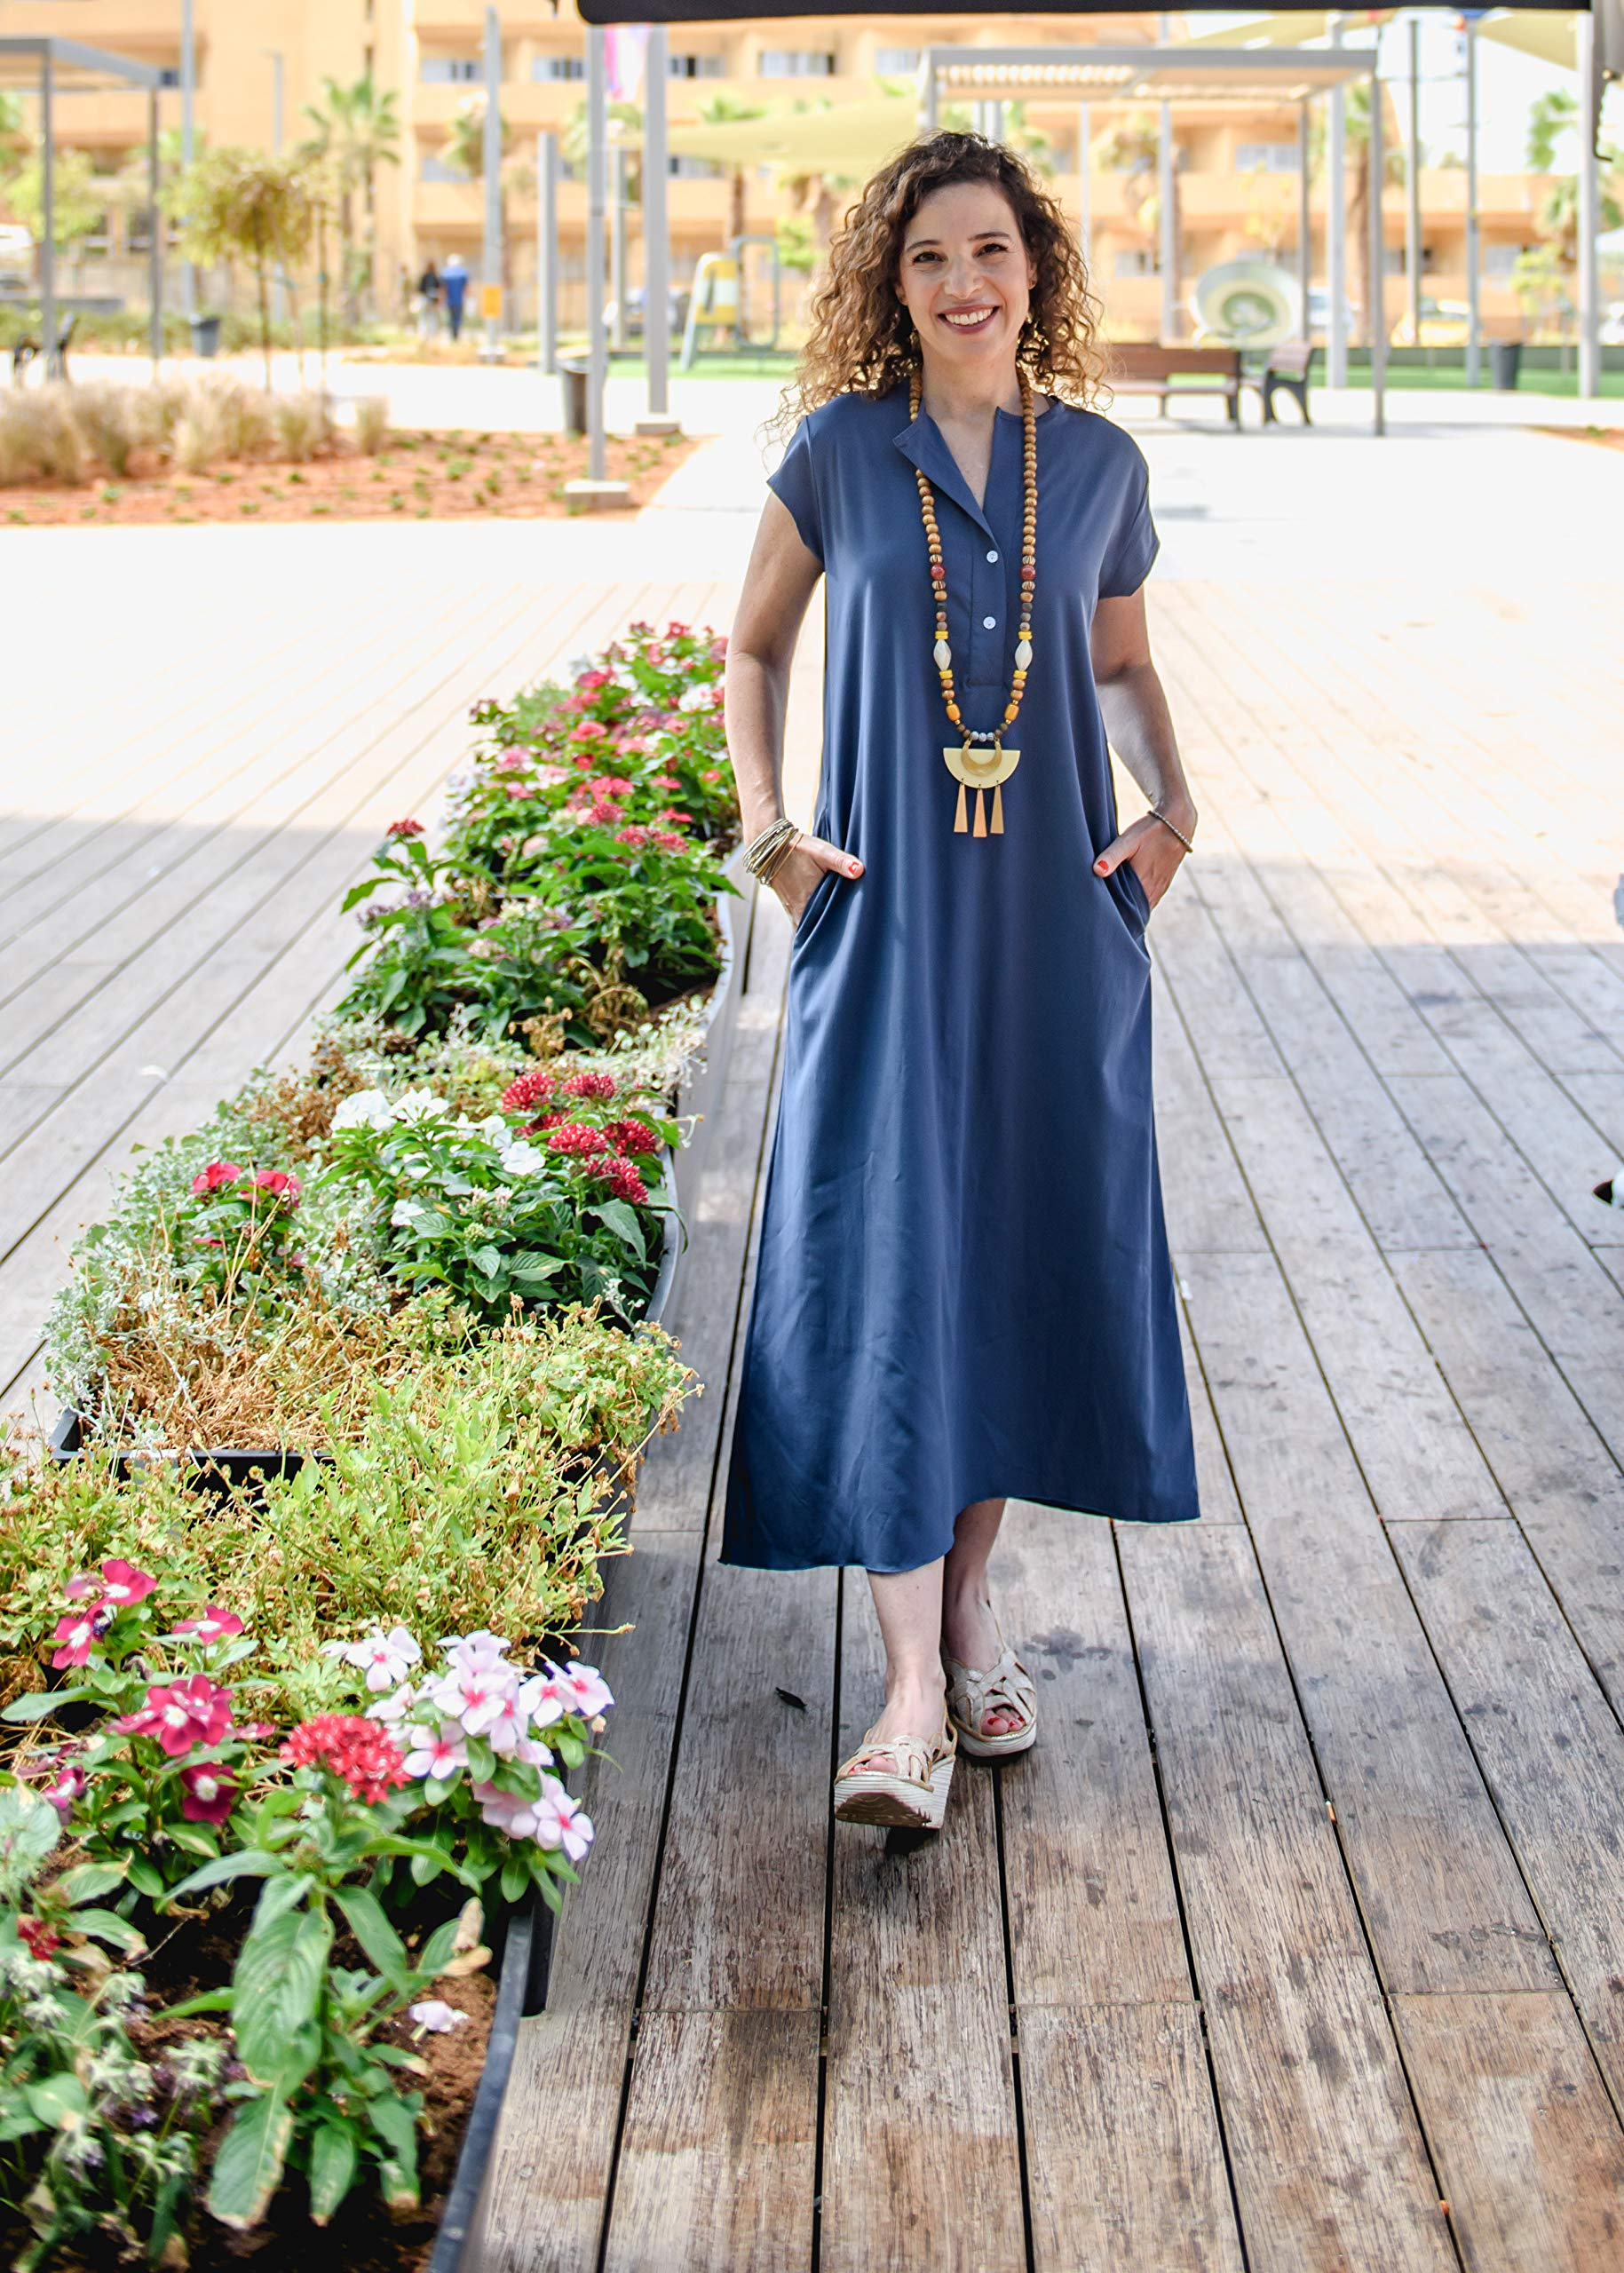 Maxi Oversized Blue Viscose Button Dress, Casual Or Evening Handmade Designer Women's Wide Dress with Side Pockets and V Neckline, Size 6-12